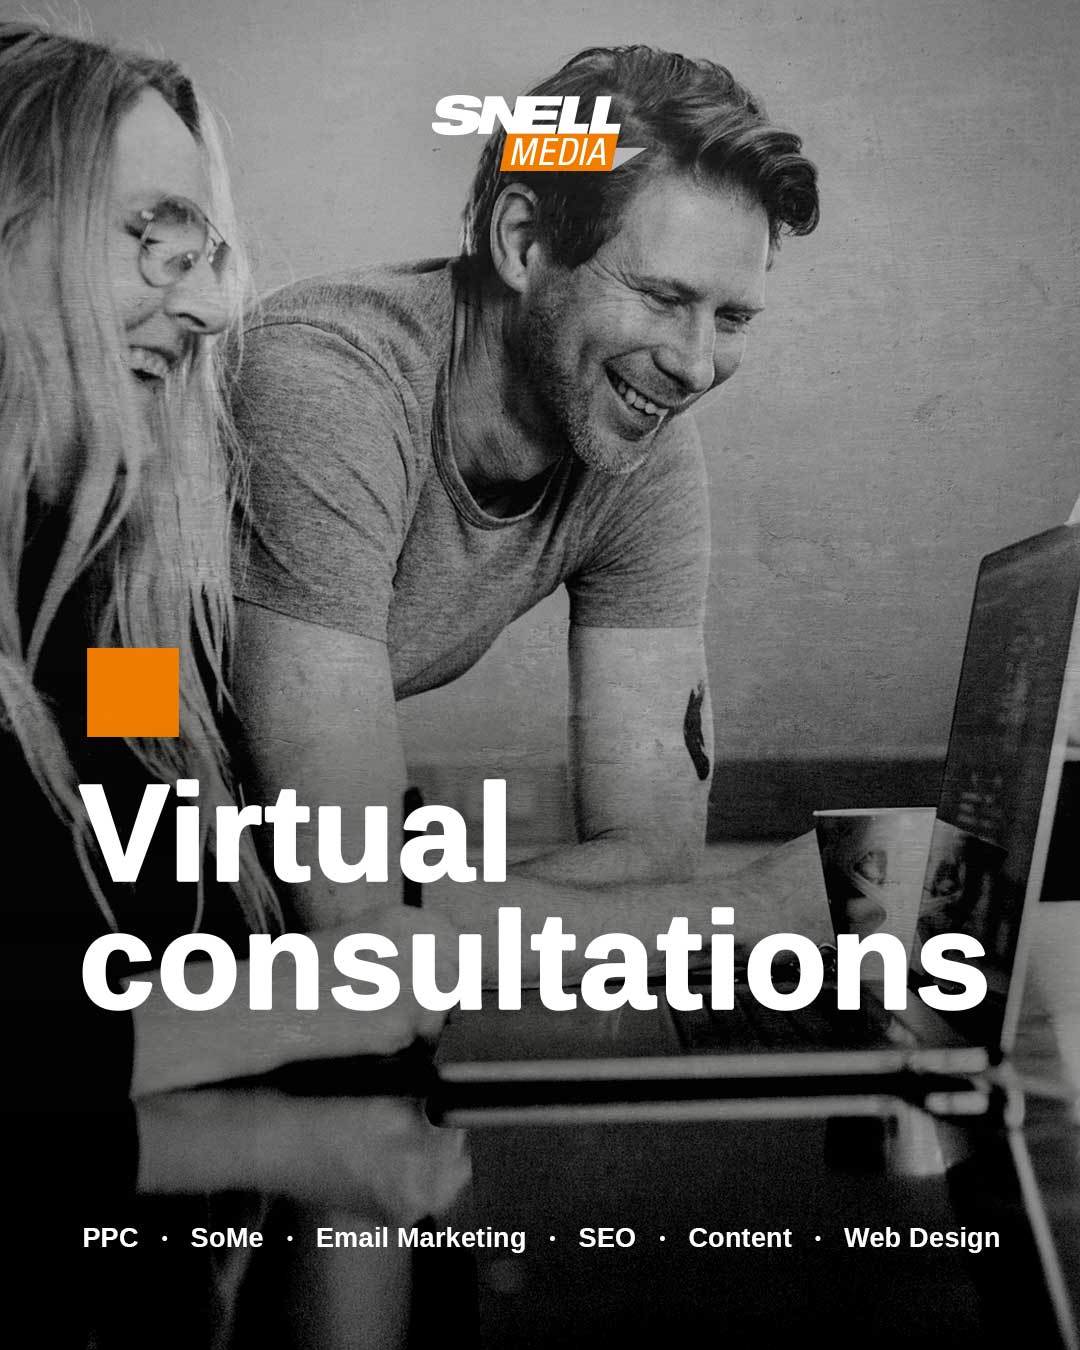 Customer Experience and Virtual Consultations